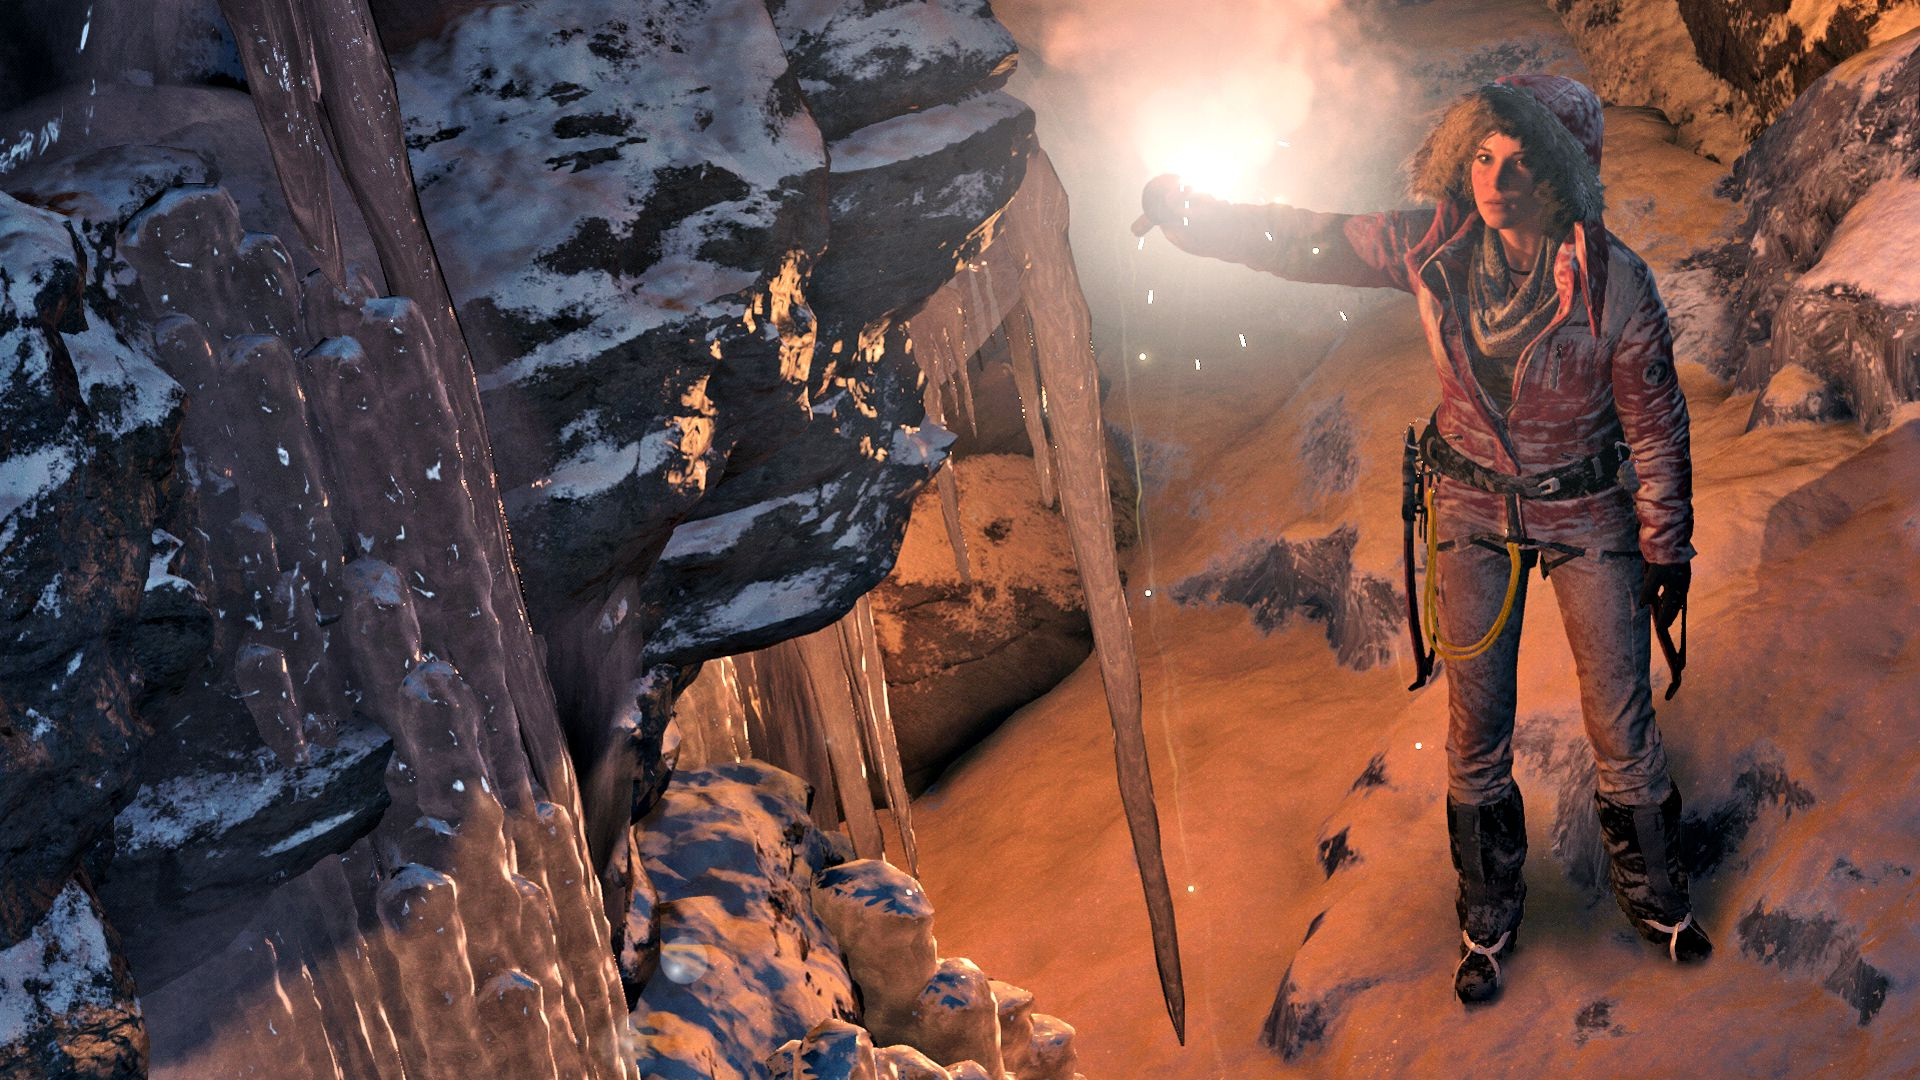 Lara appears cold and doleful in these new Rise of the Tomb